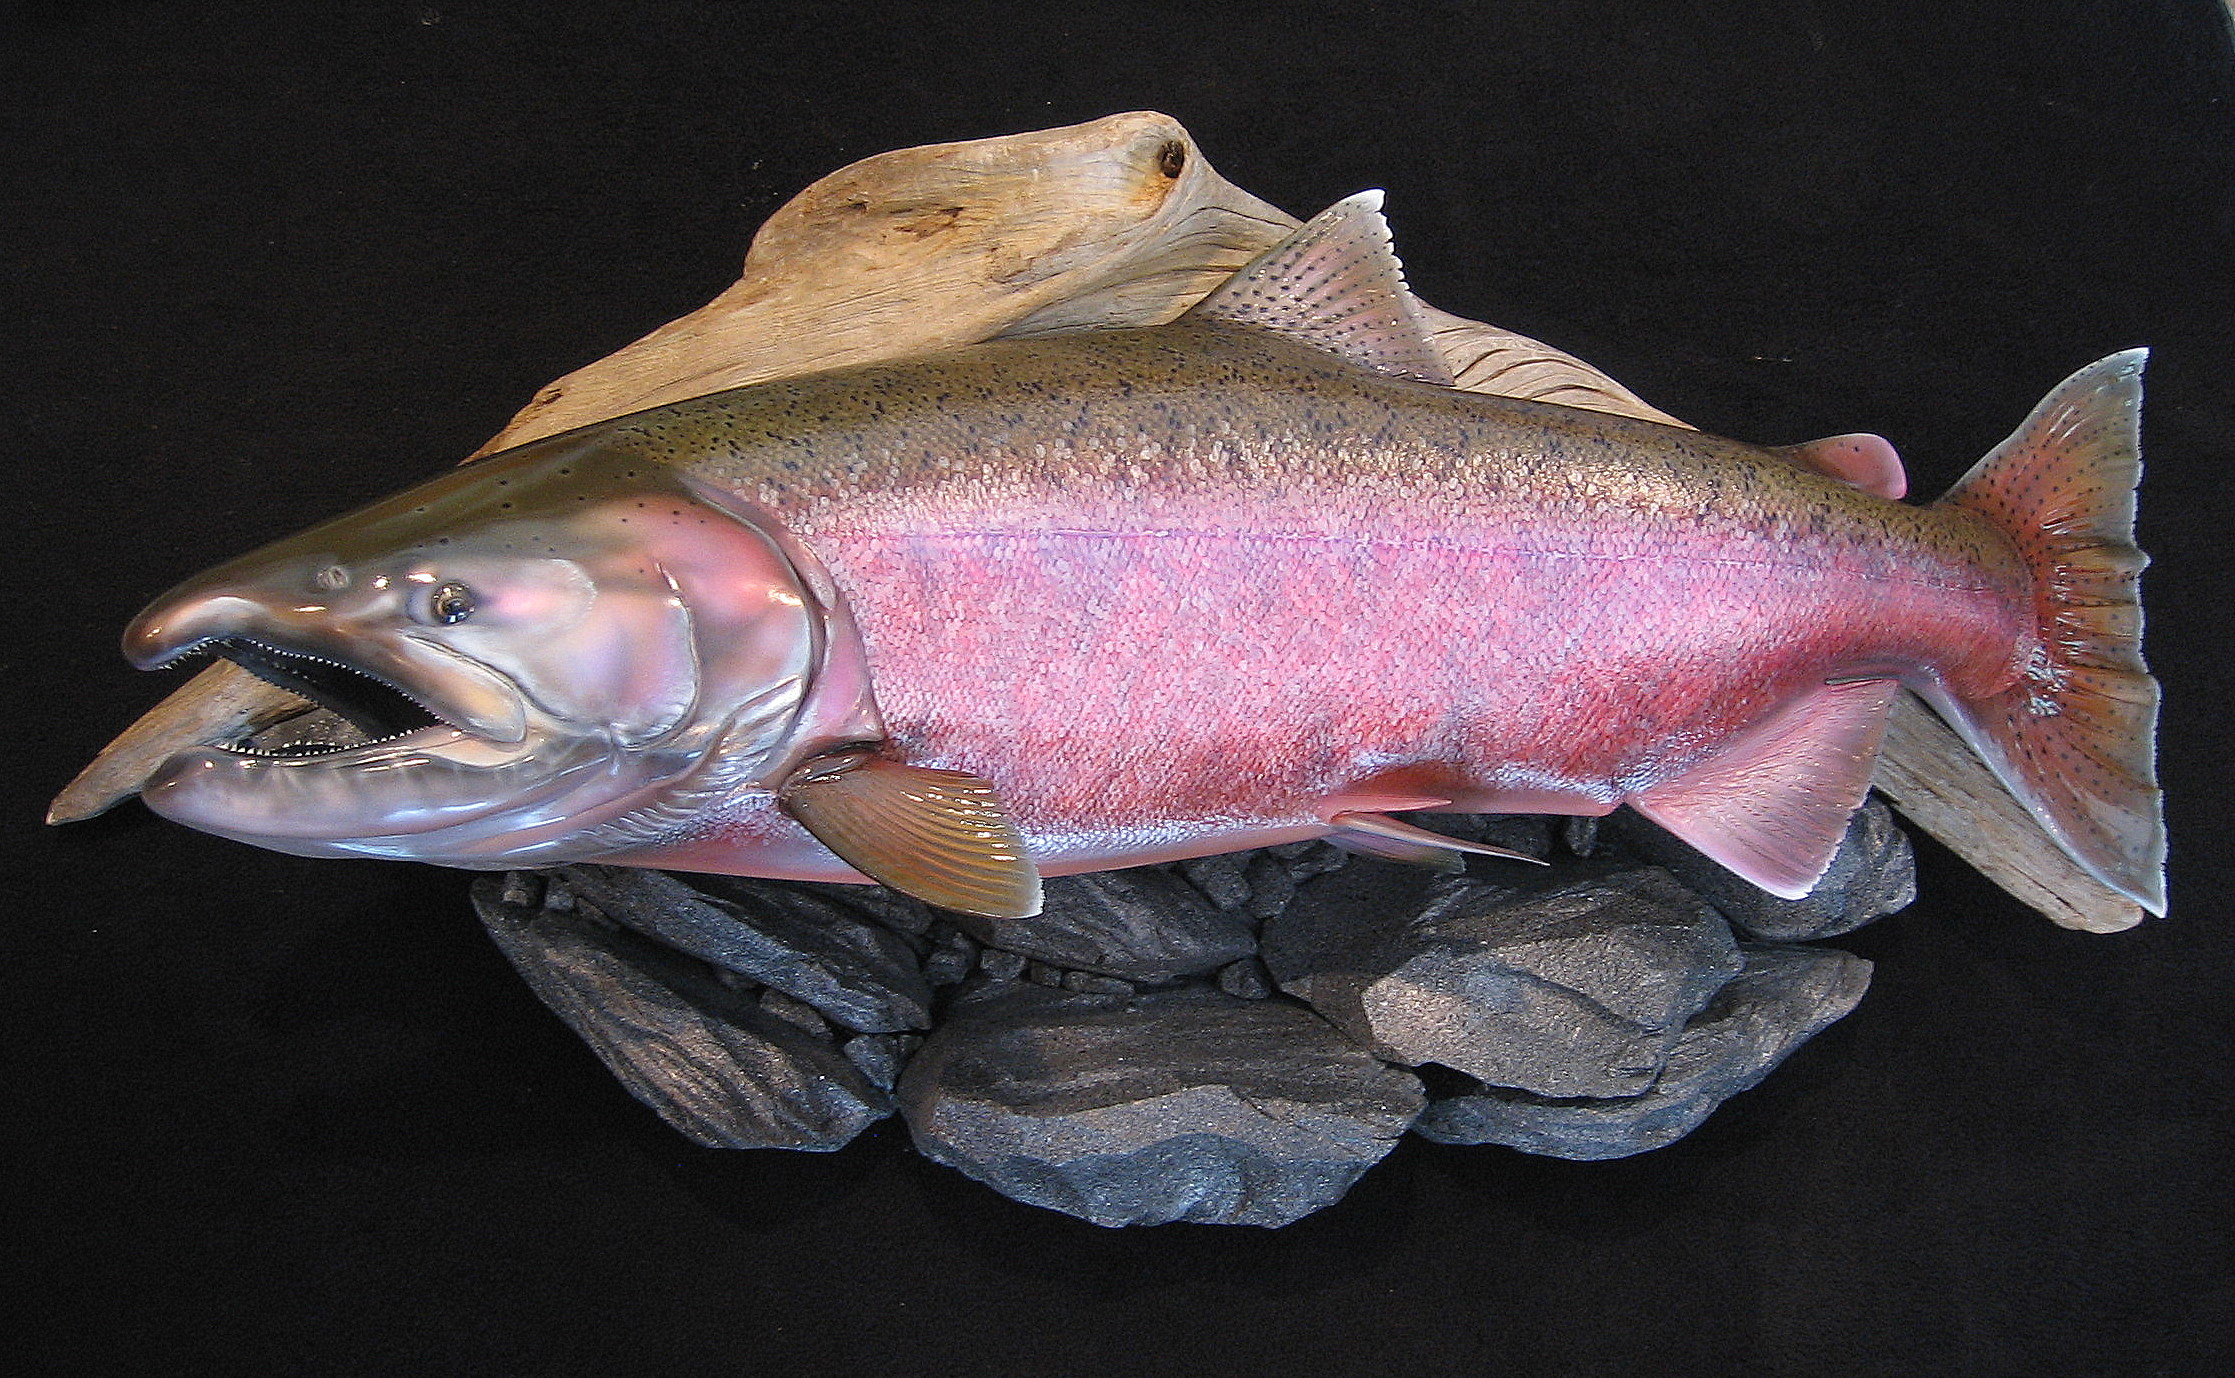 Alaskan Spawning King Salmon Replica featured on riverrock